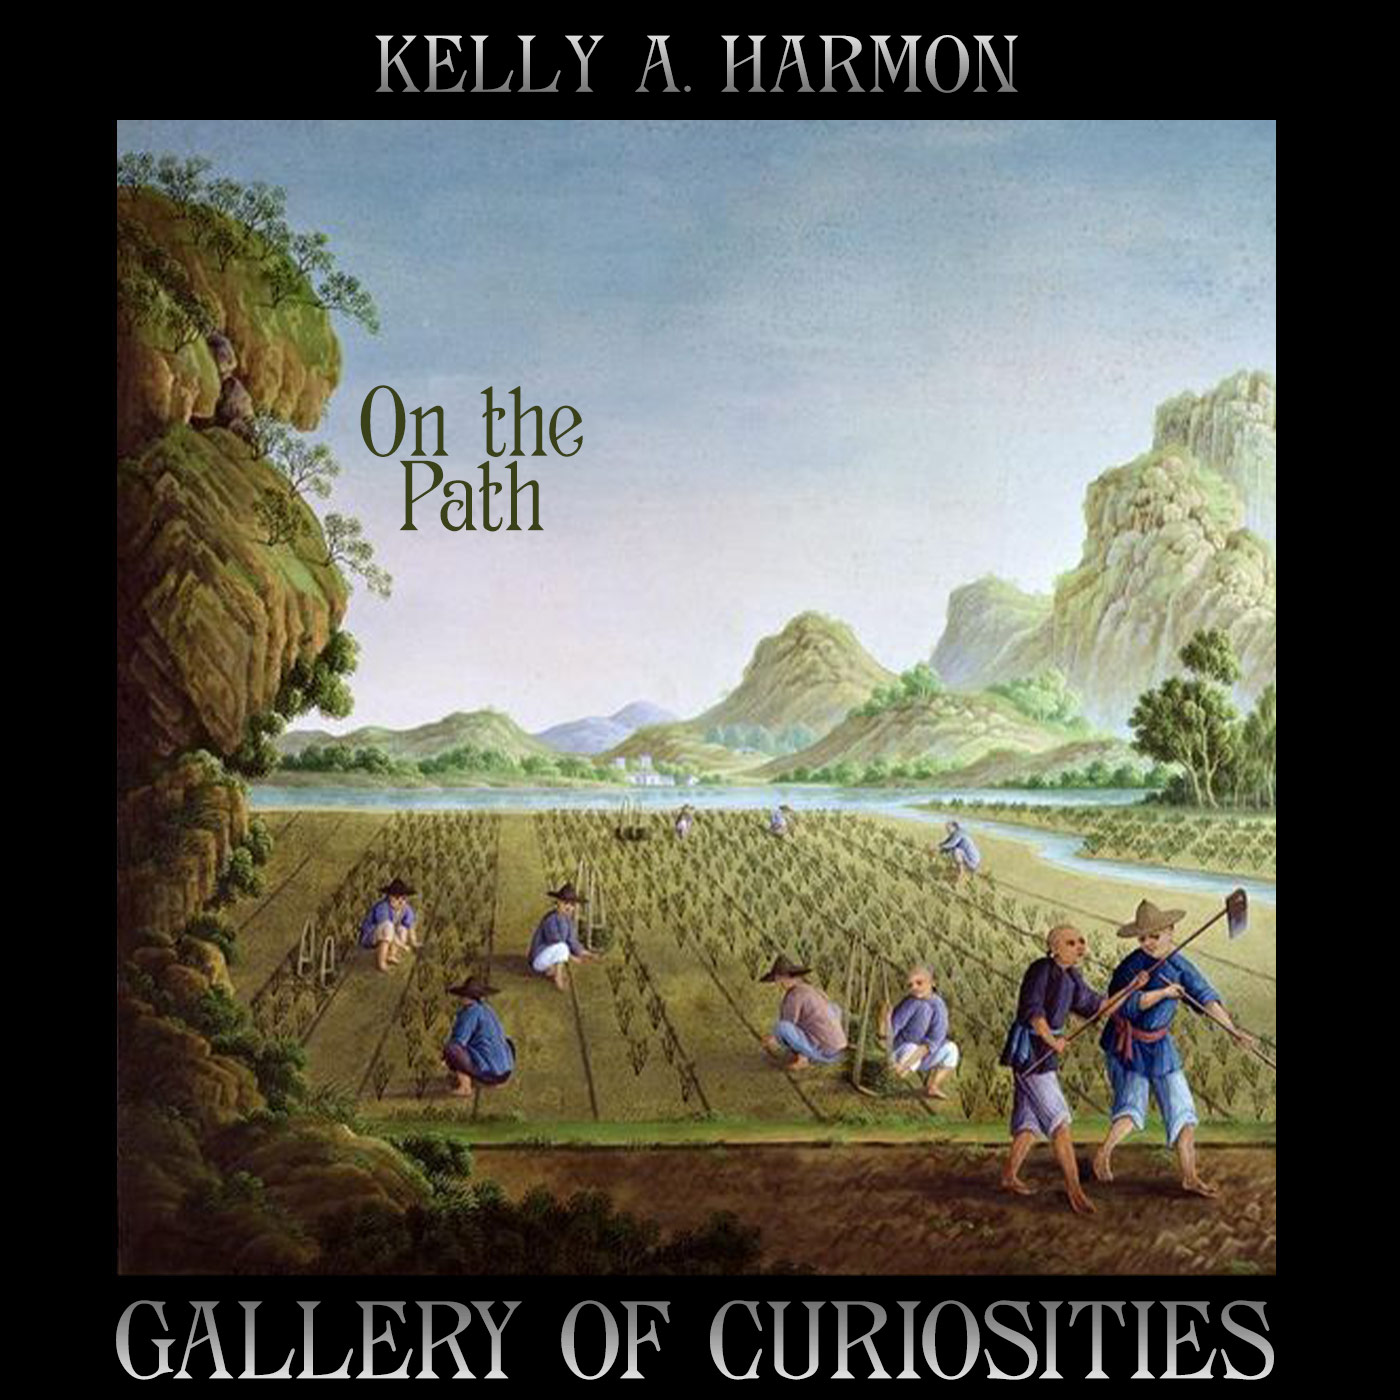 On The Path by Kelly A. Harmon